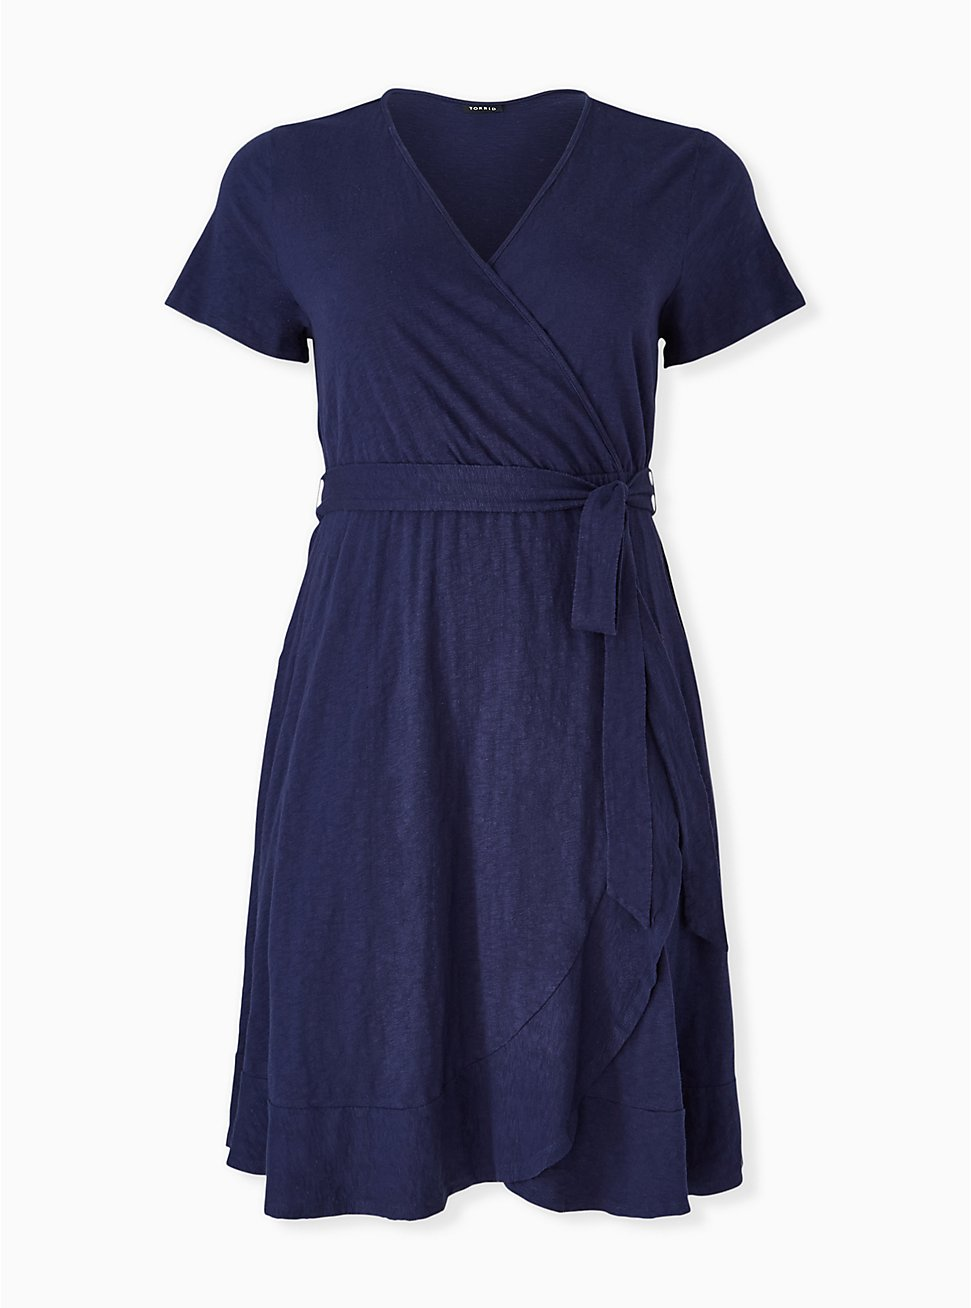 Navy Slub Jersey Ruffle Mini Wrap Dress, PEACOAT, hi-res